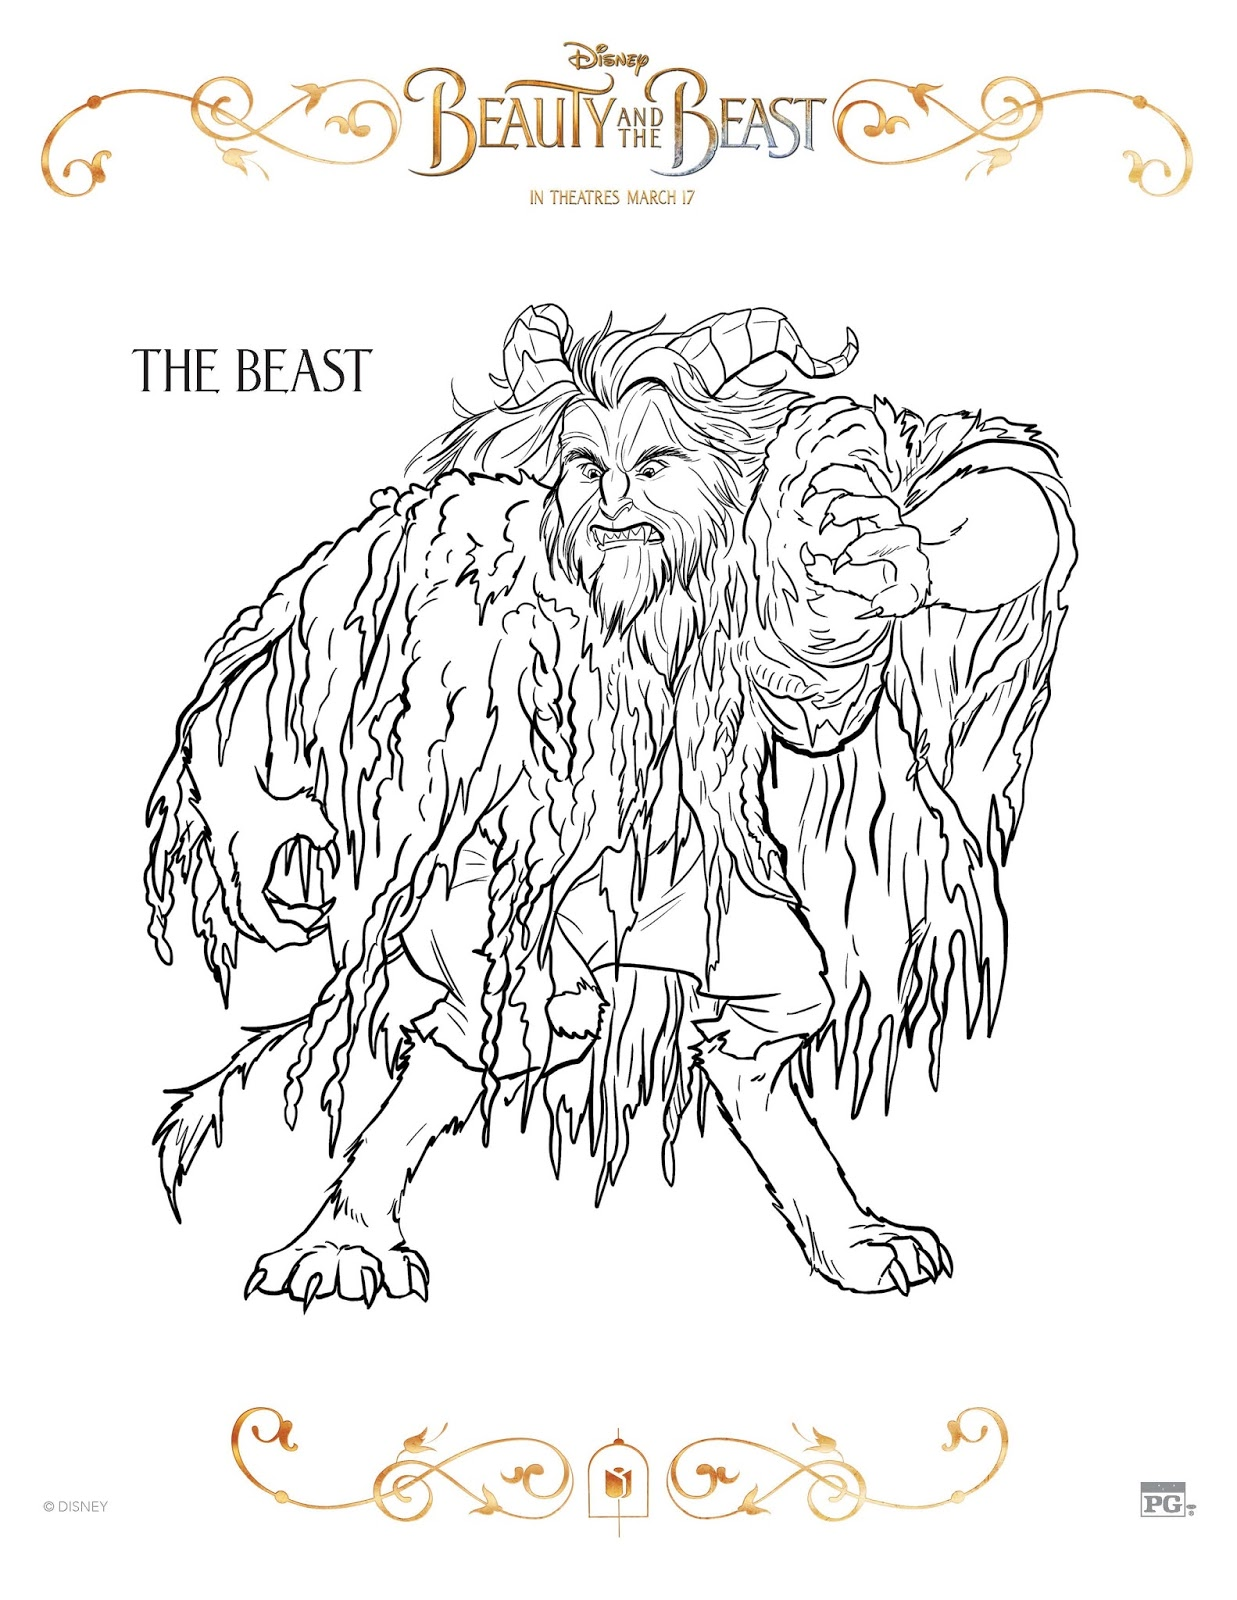 Here Are Some Coloring Pages For The Live Action Beauty And Beast Simply Click On Image To Get A Larger Version Then Print Them Out Color